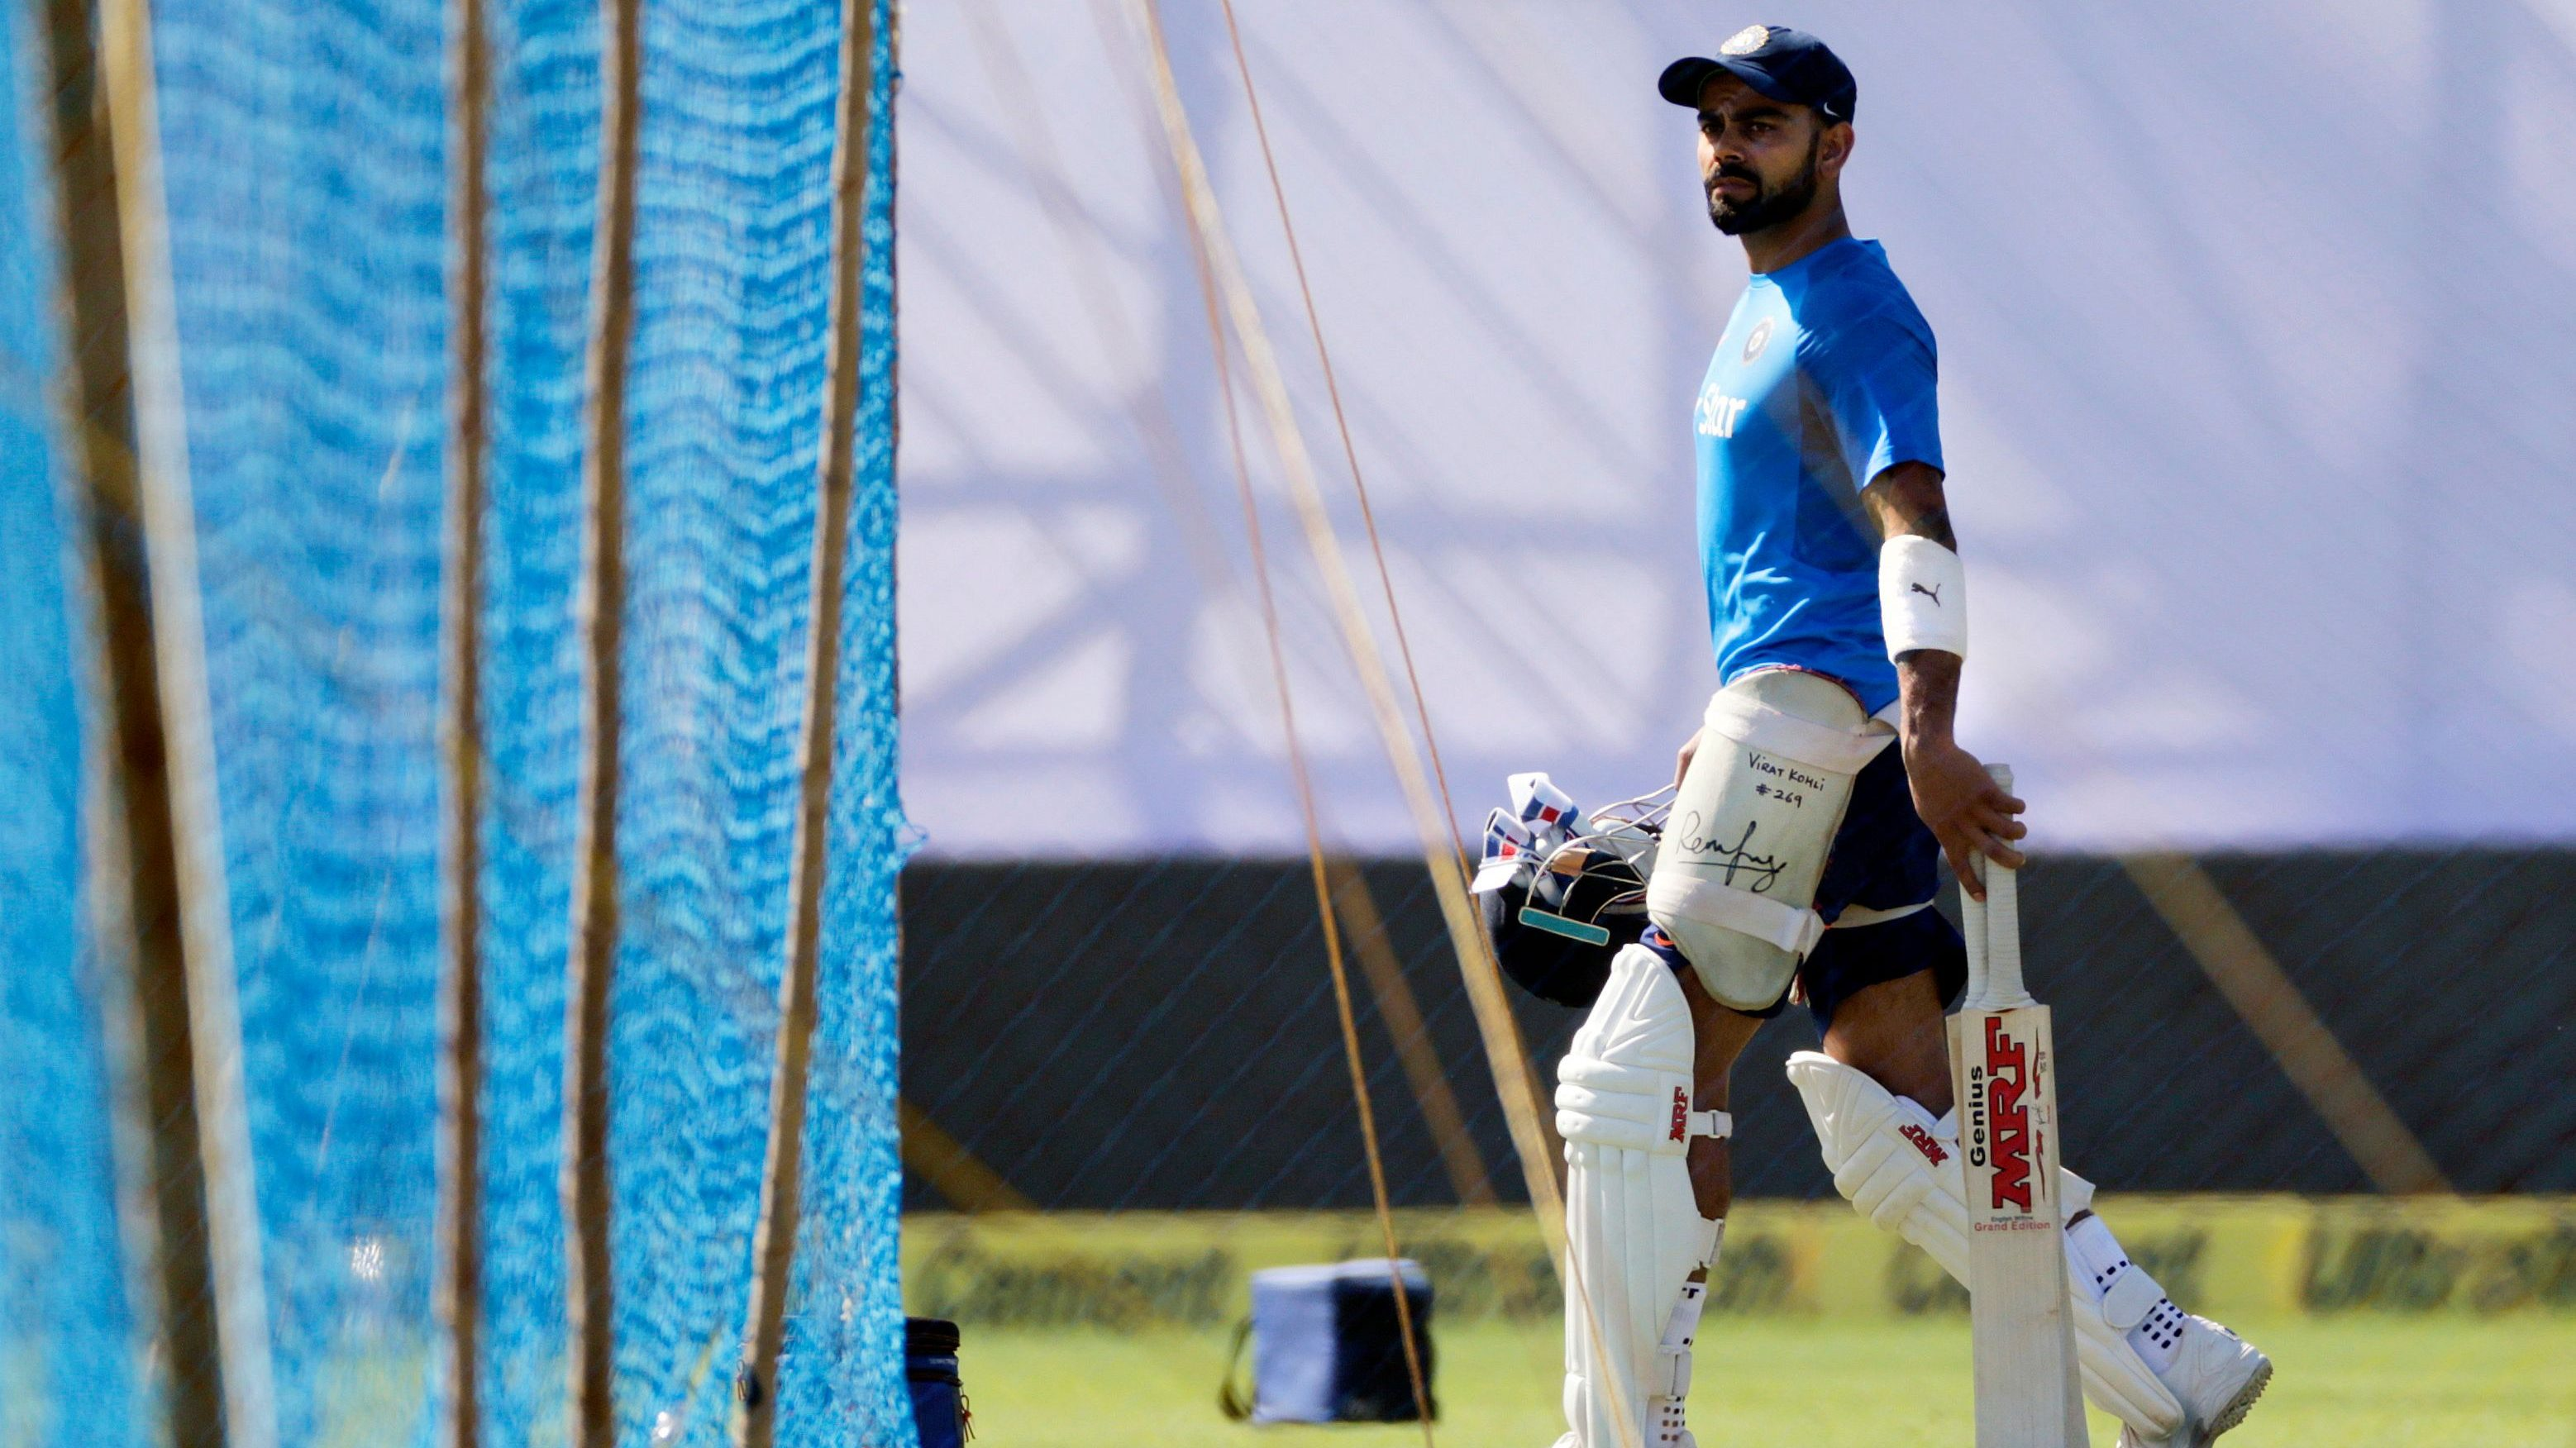 India's captain Virat Kohli returns after batting during a practice session ahead of their first cricket test match against Australia in Pune, India, Wednesday, Feb. 22, 2017. (AP Photo/Rajanish Kakade)